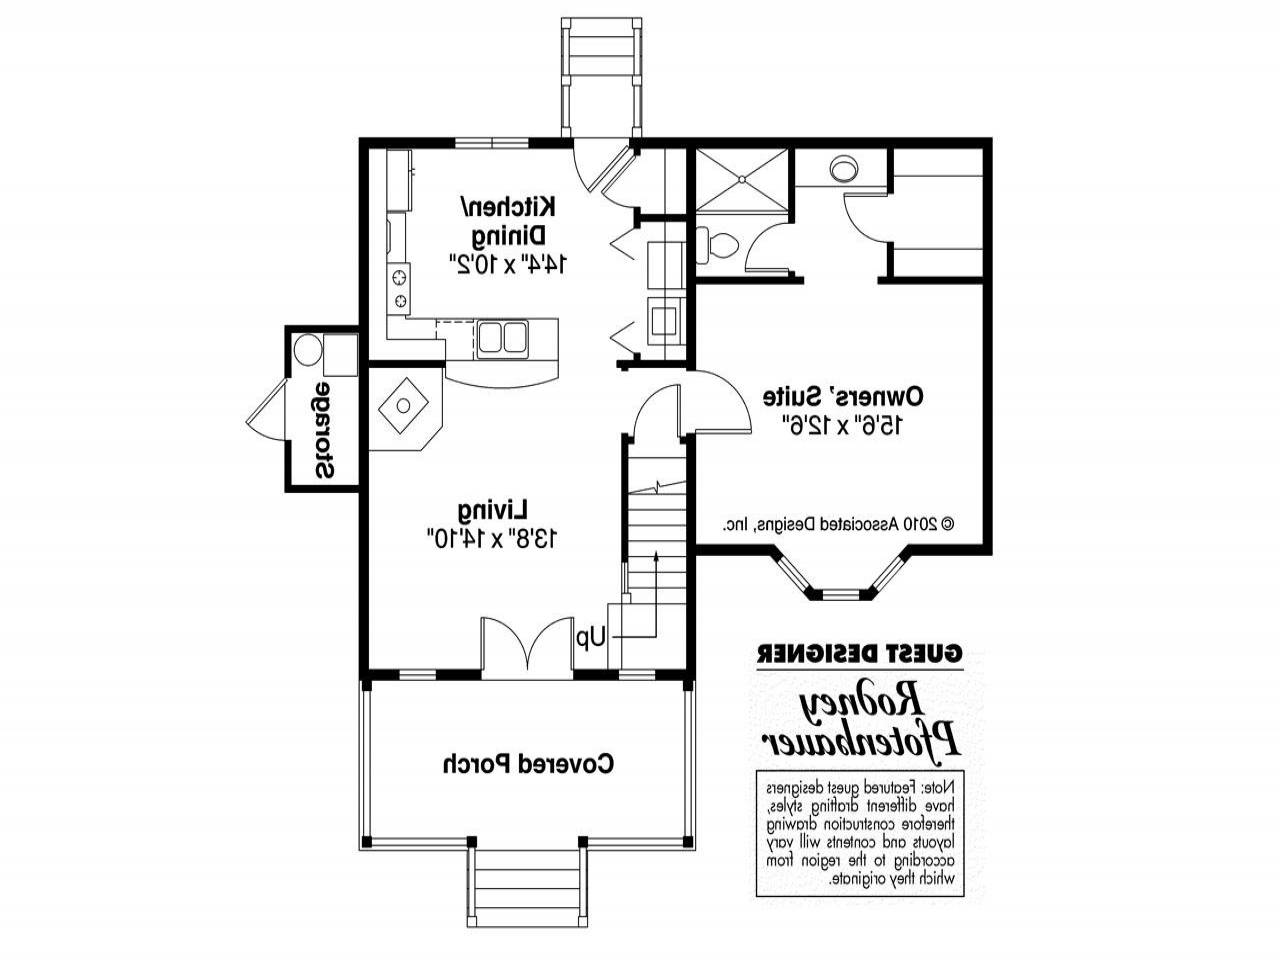 creepy victorian house plans html with 22f782386c239875 Small Victorian House Floor Plans Queen Anne Victorian Houses on 11a73ea7b8a4a0ed also A2bc816f308cb58e Queen Anne Victorian Houses Victorian House With Wrap Around Porch as well 109ef33c8fe4ee94 Small Victorian House Floor Plans Queen Anne Victorian Houses besides Creepy Victorian Girl Looking Out Window Edward Fielding besides 22f782386c239875 Small Victorian House Floor Plans Queen Anne Victorian Houses.